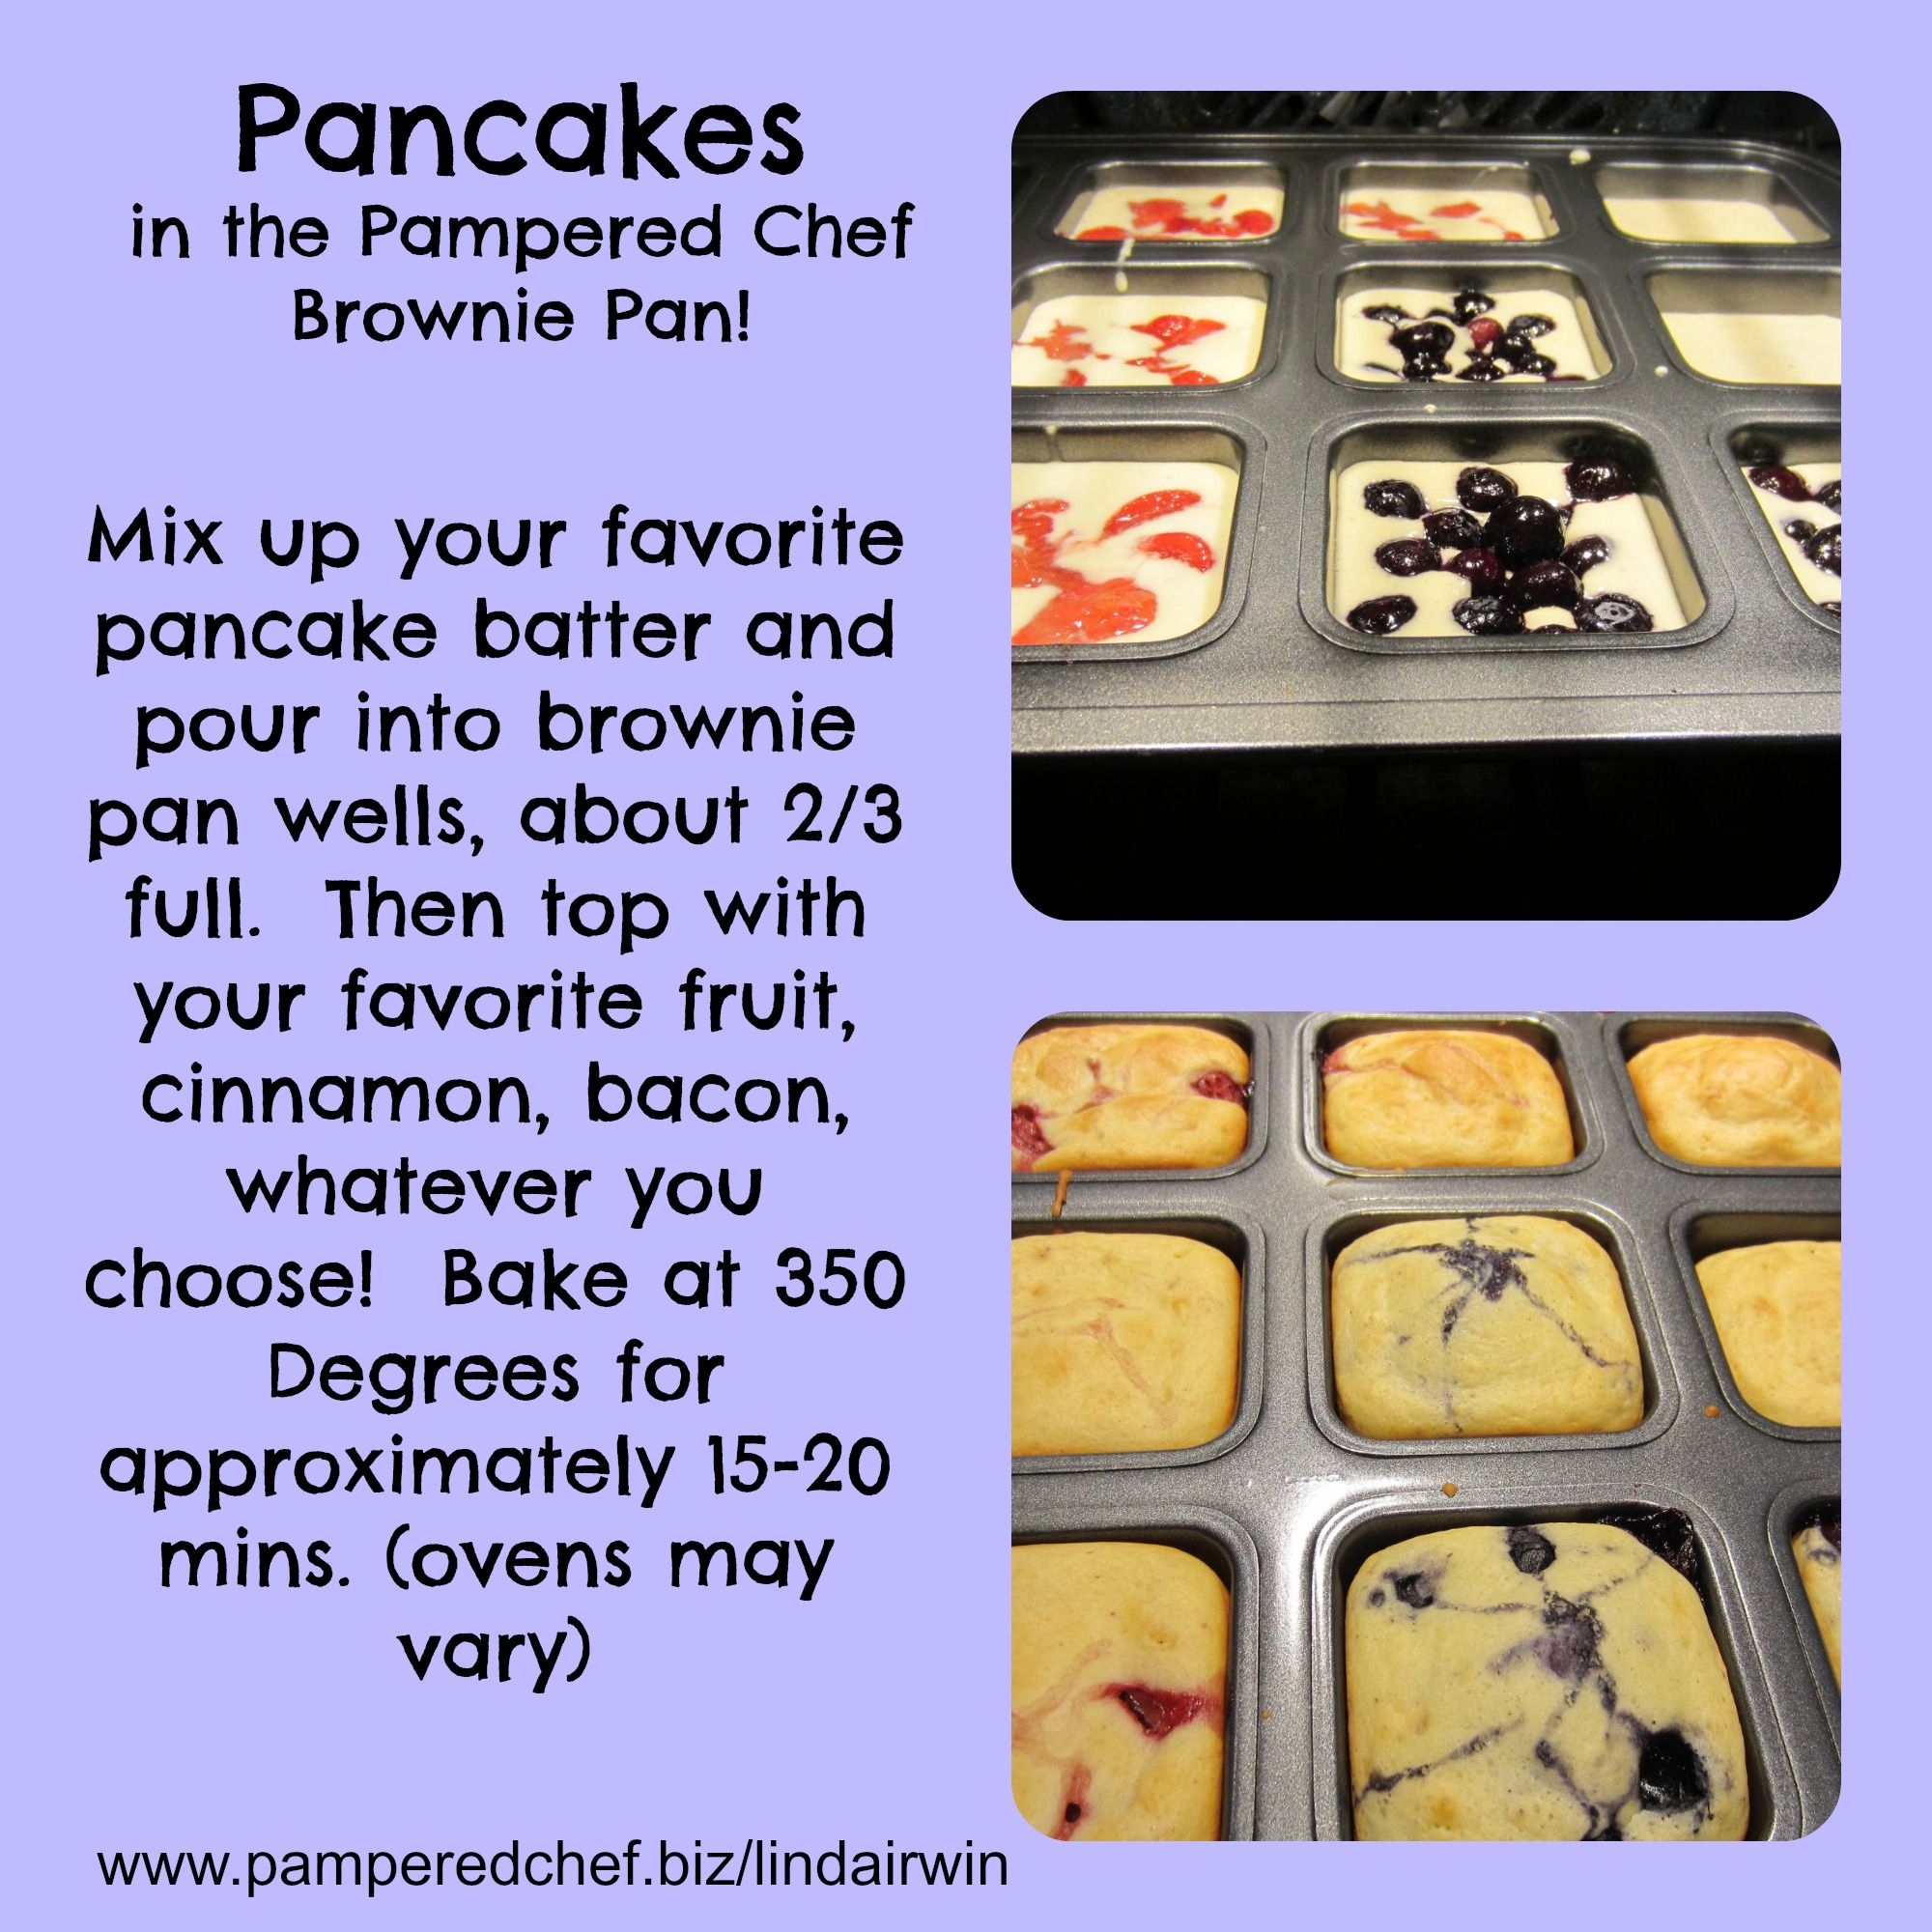 Make everyone in the family happy when you customize their pancakes! The Pampered Chef Brownie Pan www.pamperedchef.biz/jessolstad